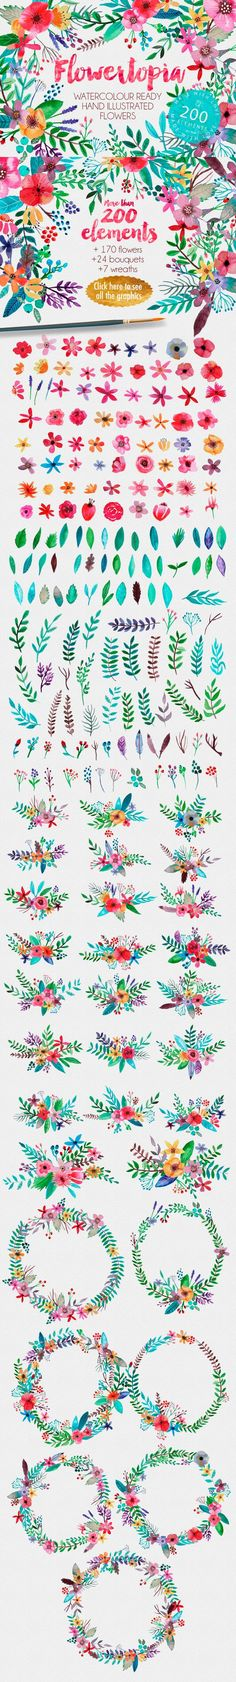 clip art feminine watercolor flowers floral hand illustrations